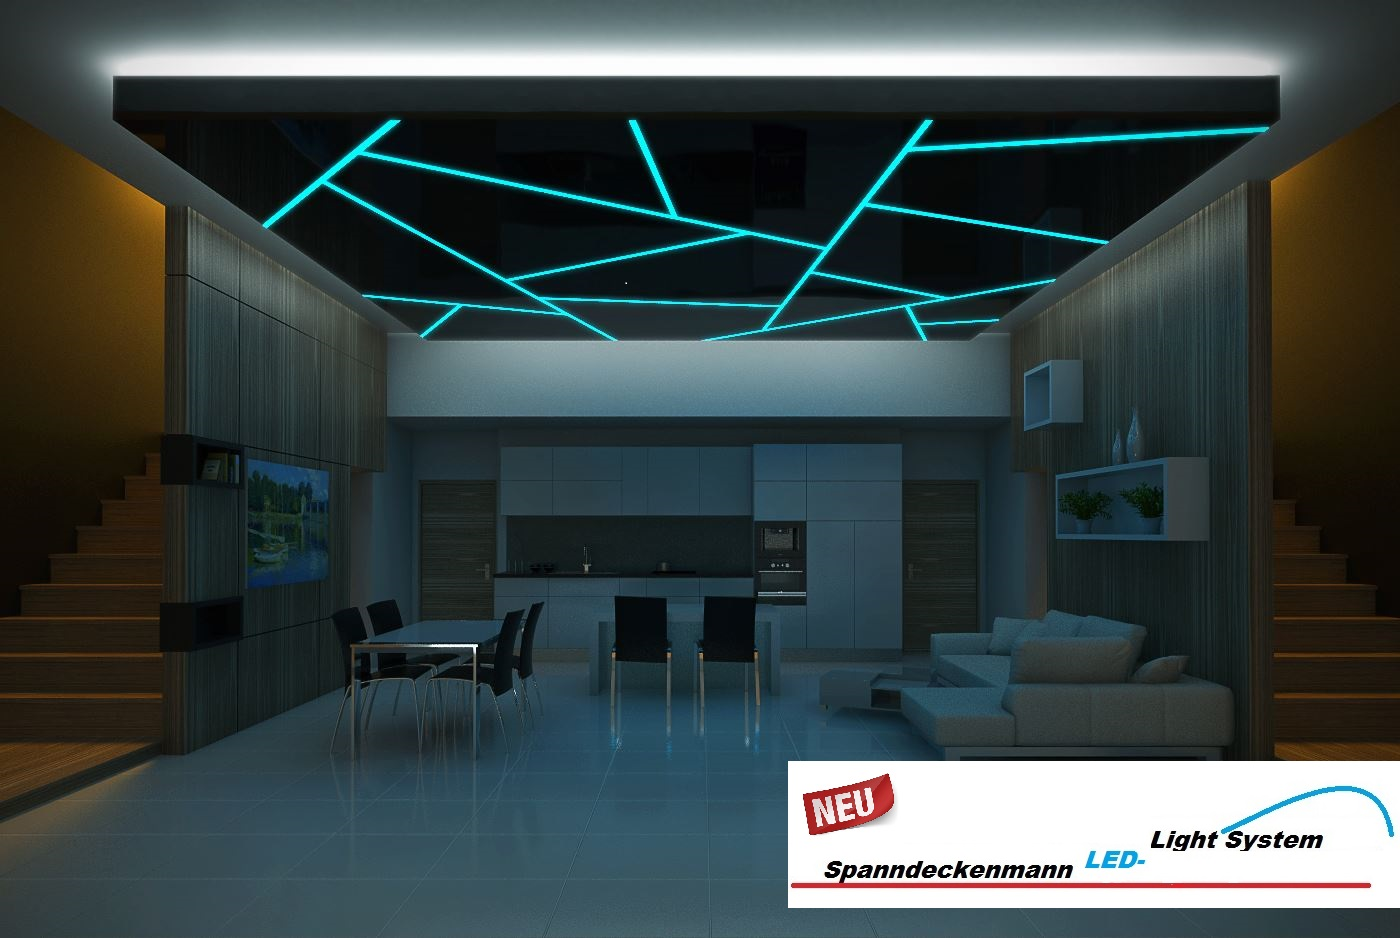 led light system spanndeckenmann. Black Bedroom Furniture Sets. Home Design Ideas